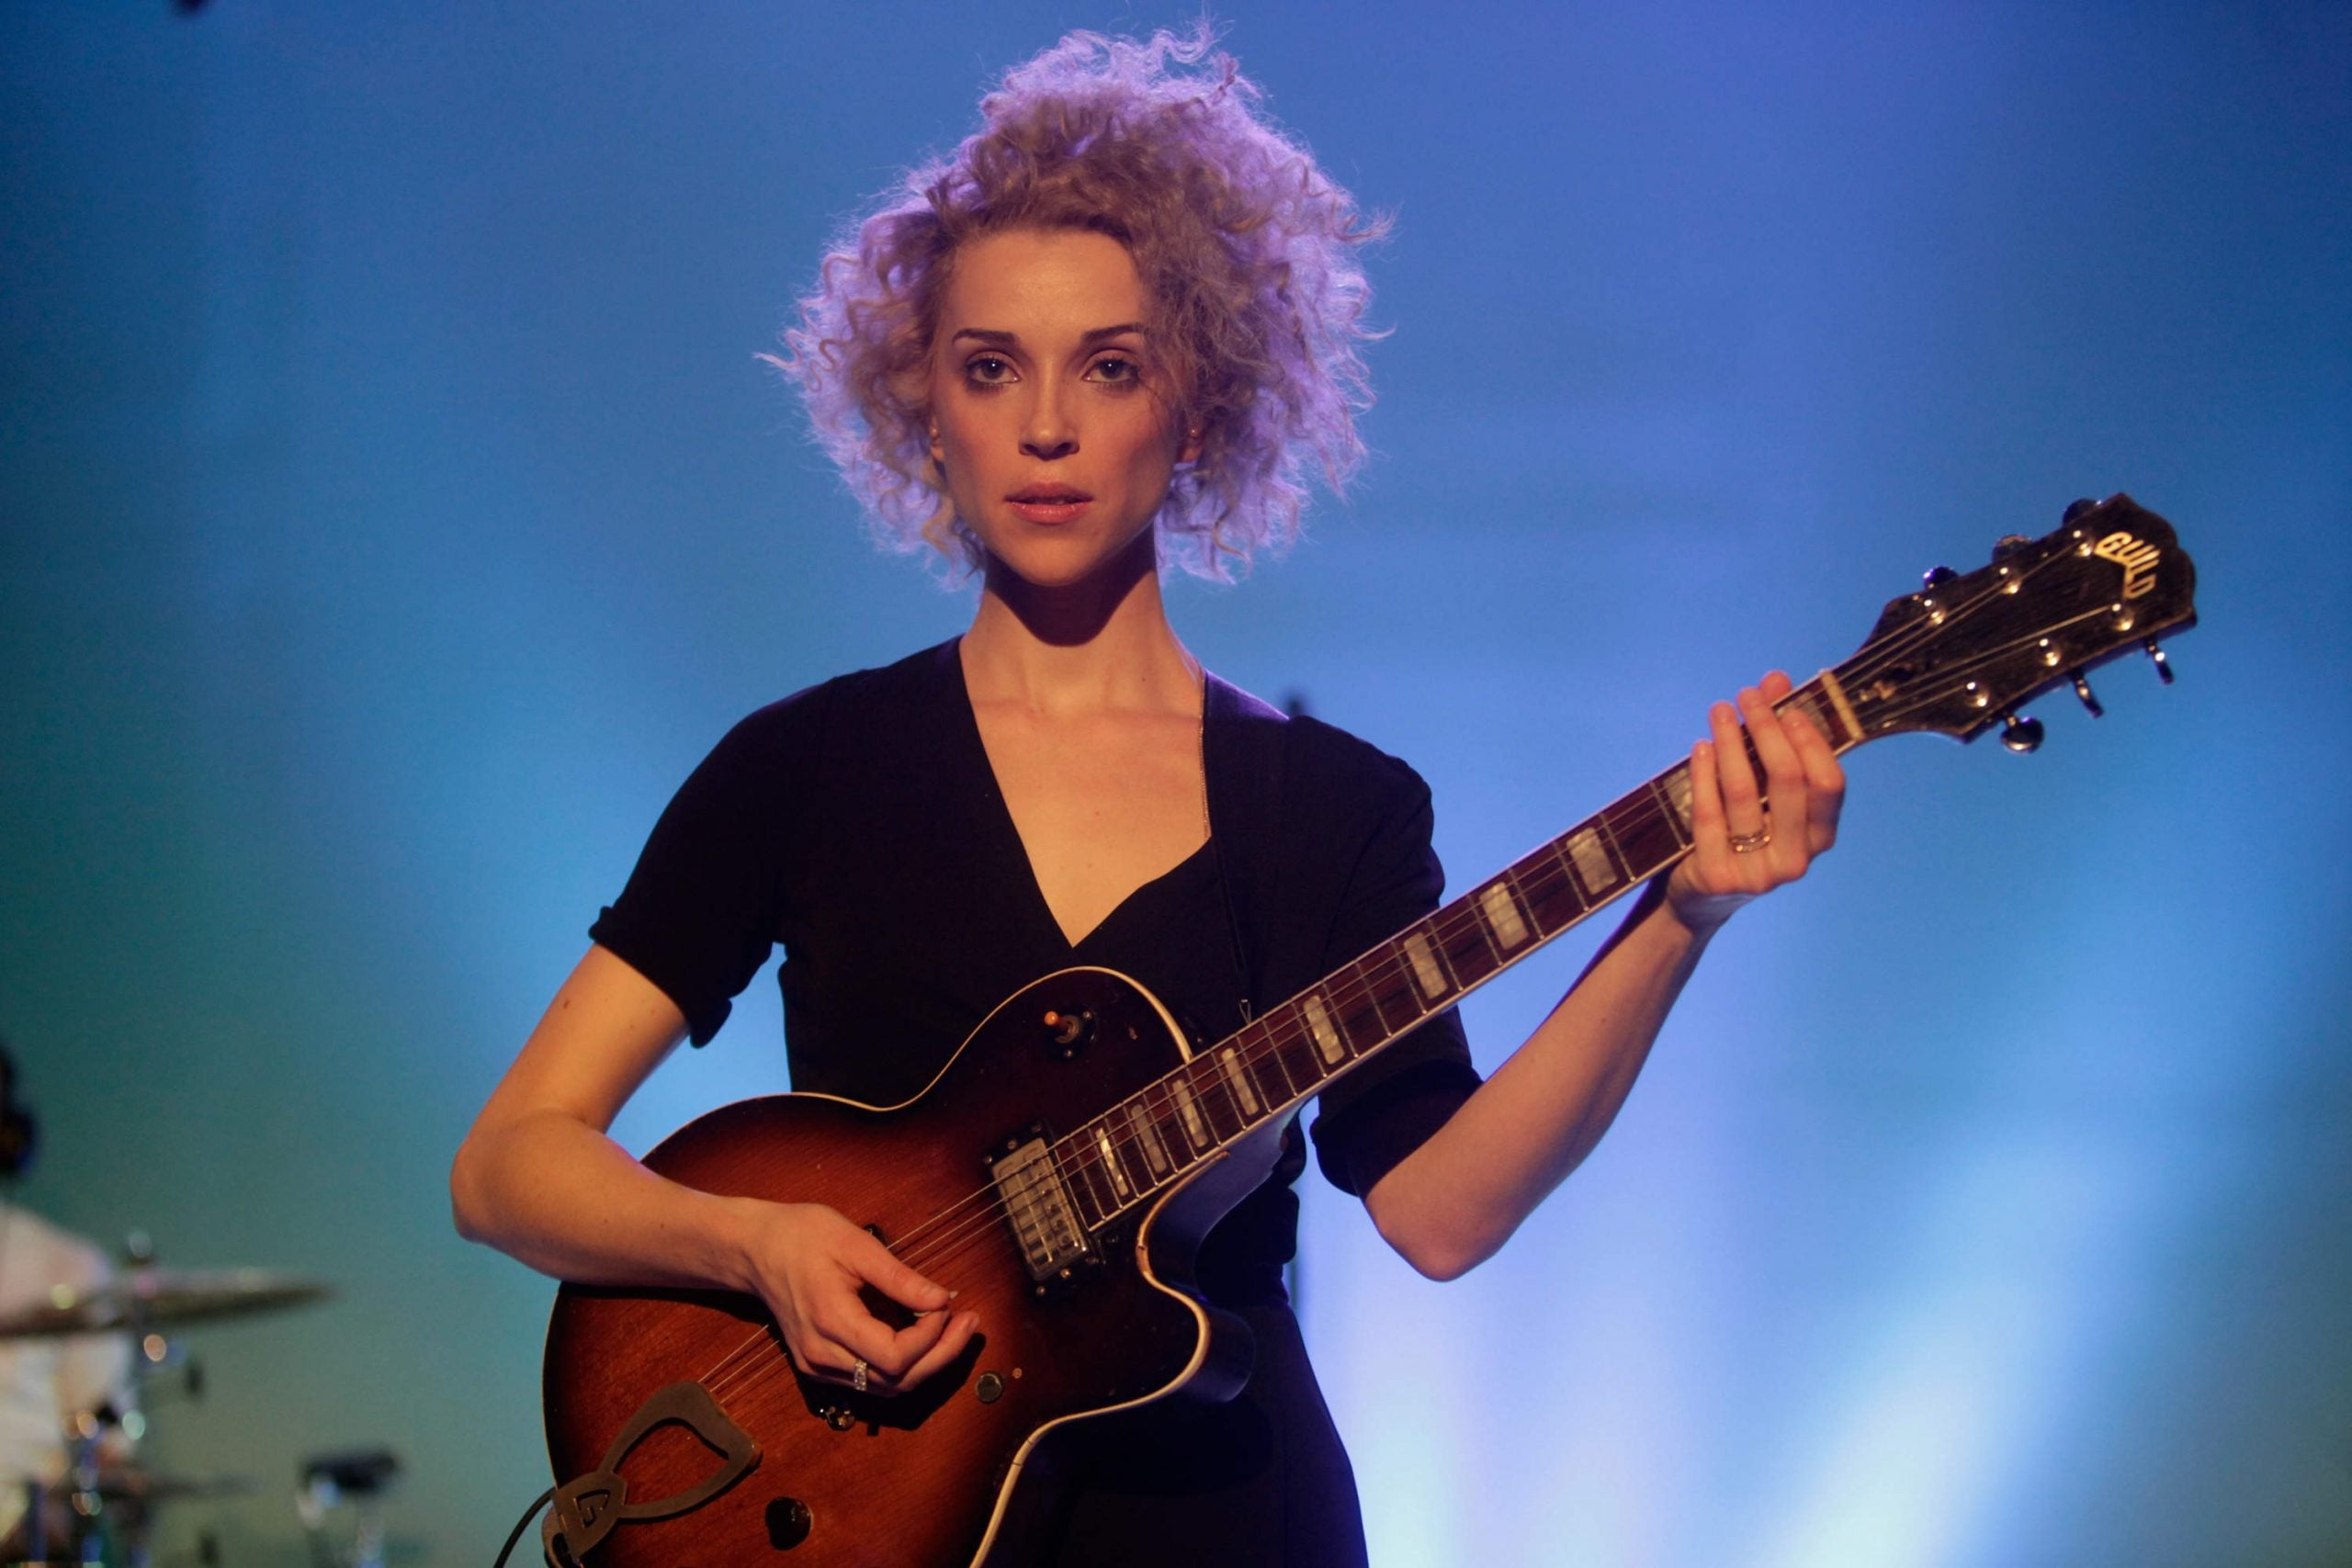 St Vincent's Masseduction is spangled with ethereal moments